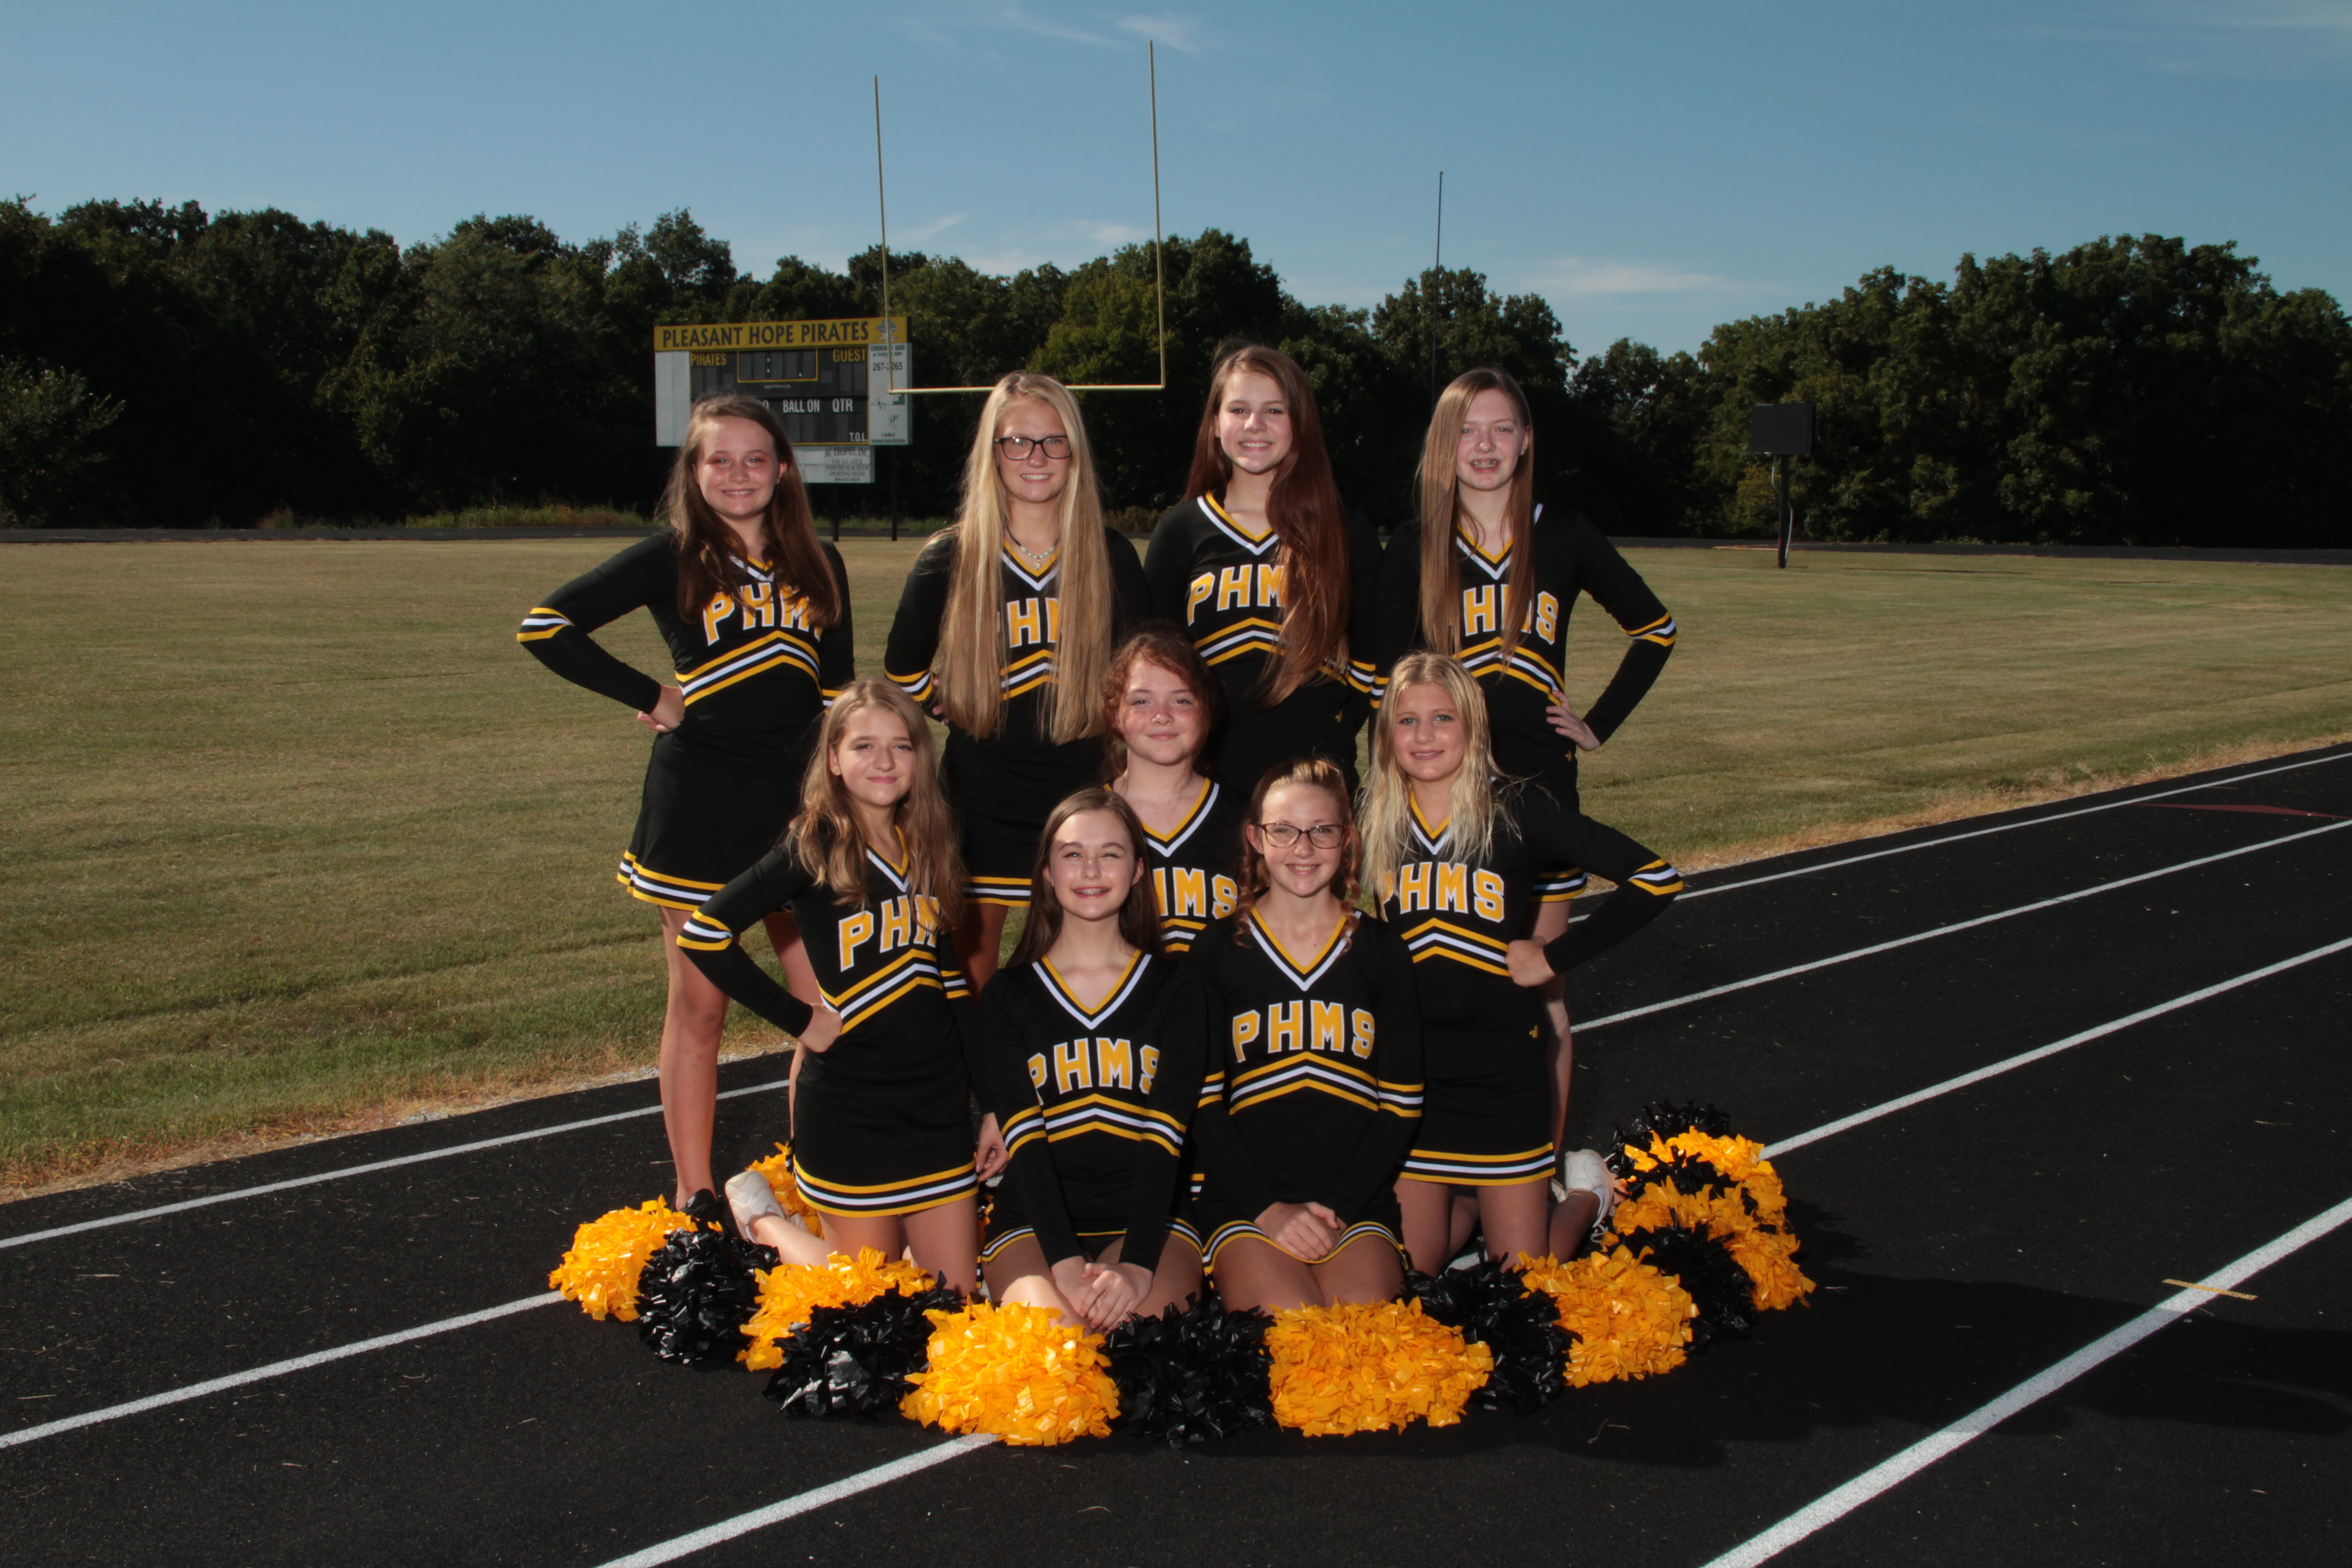 MS Cheer Team Picture